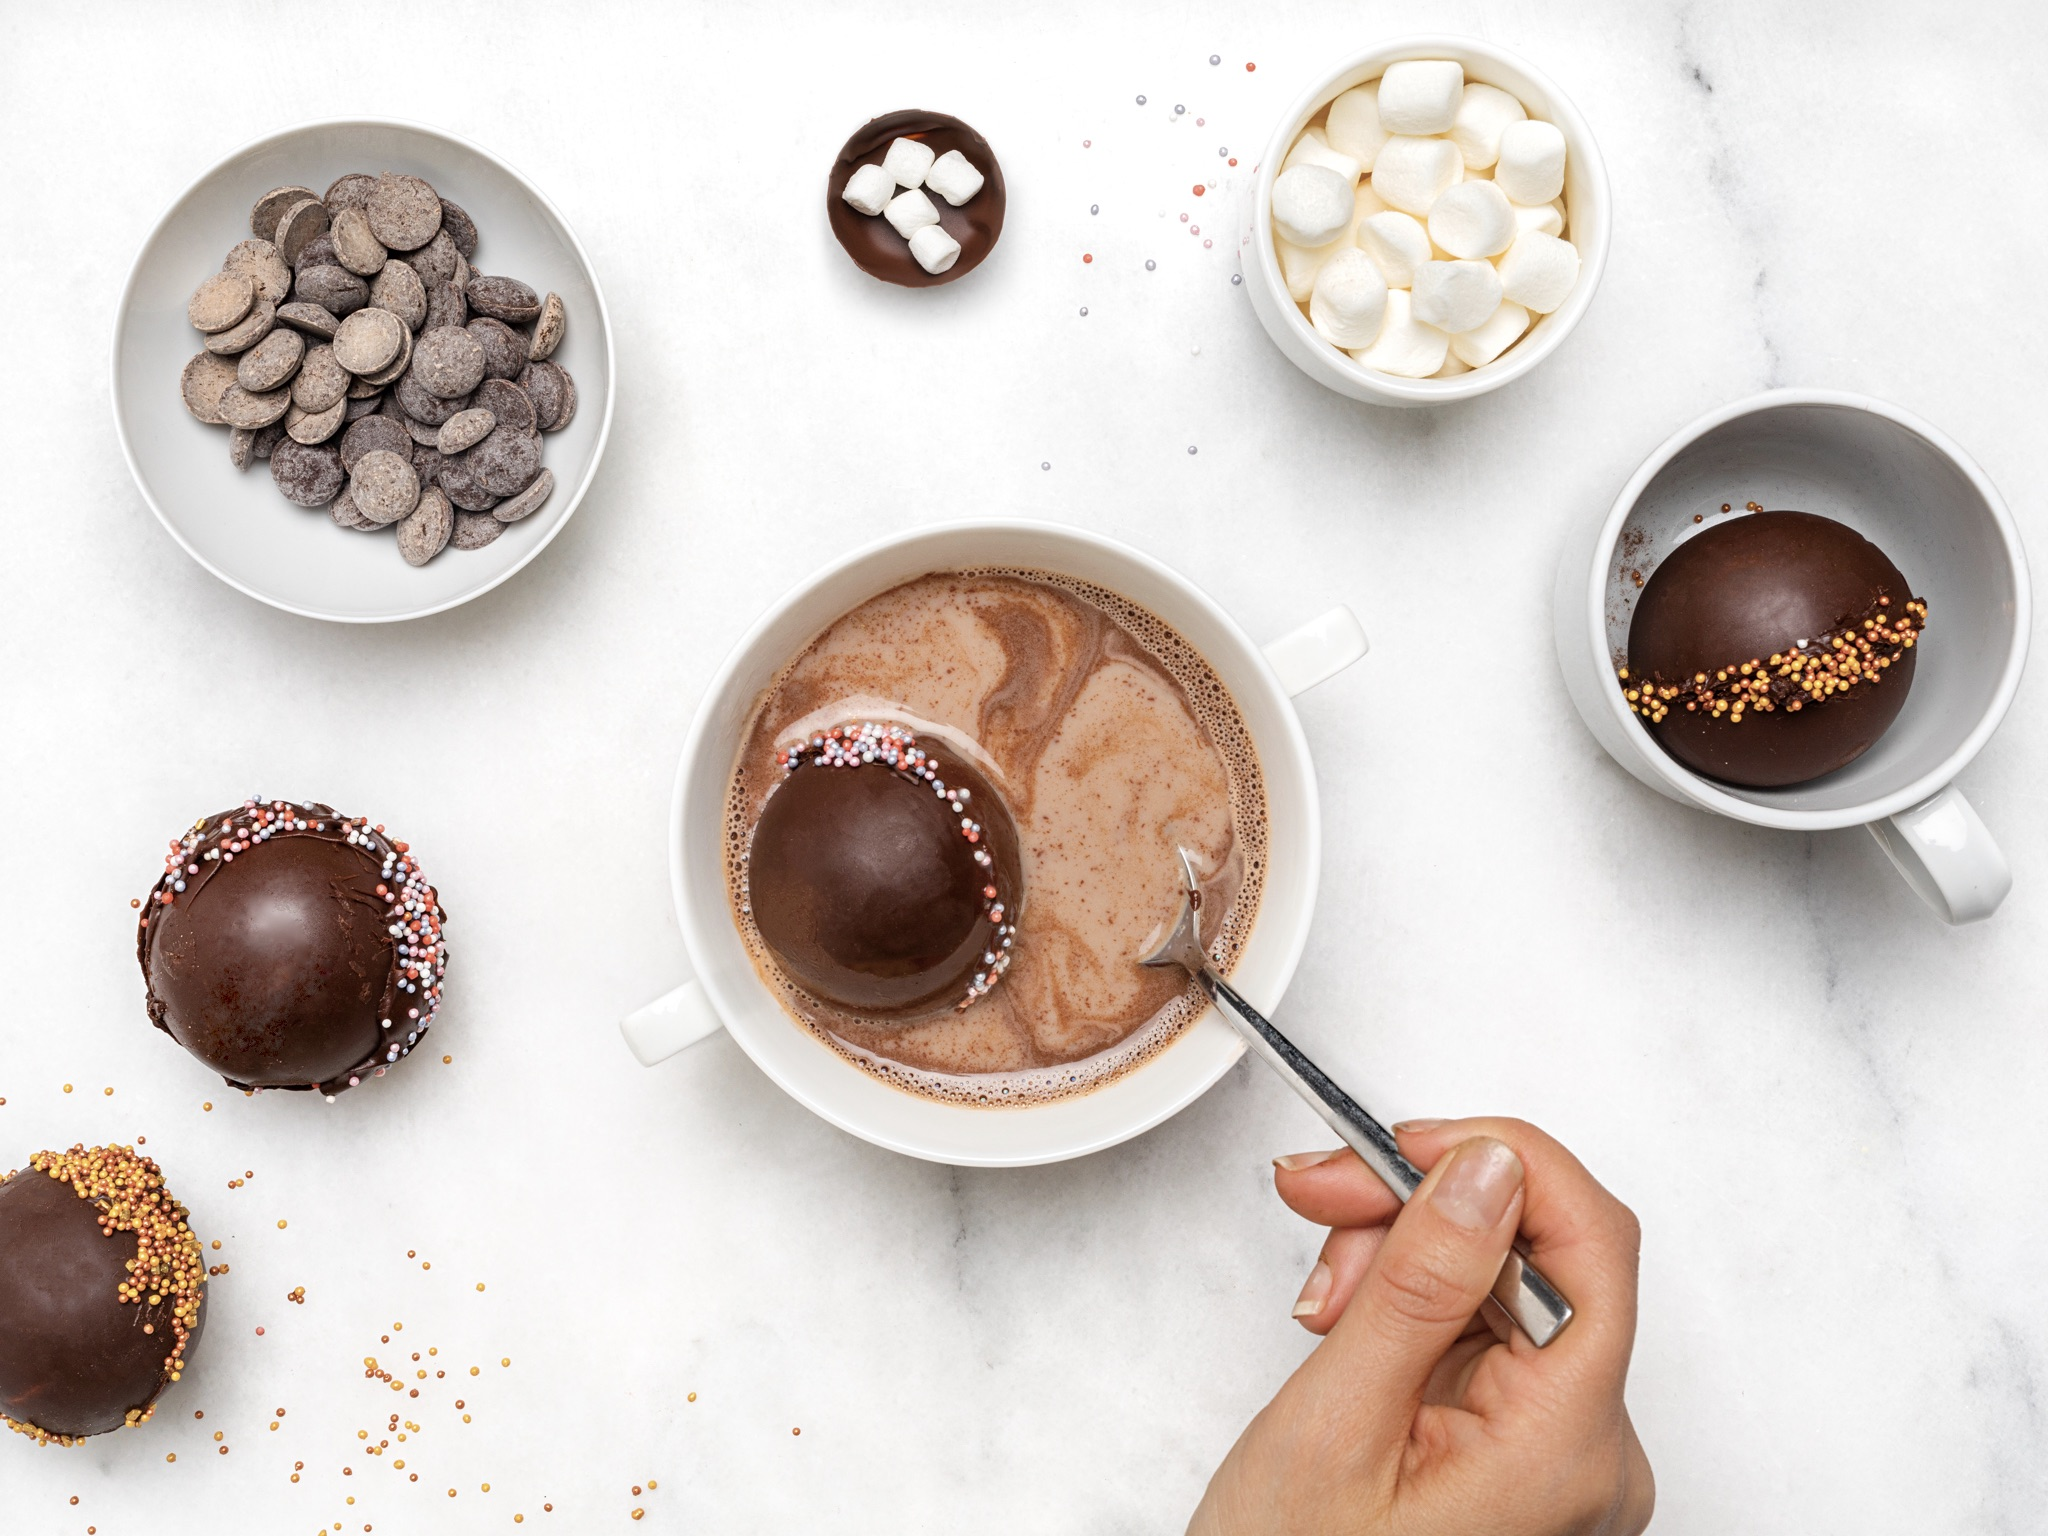 TikTok's viral hot chocolate bombs